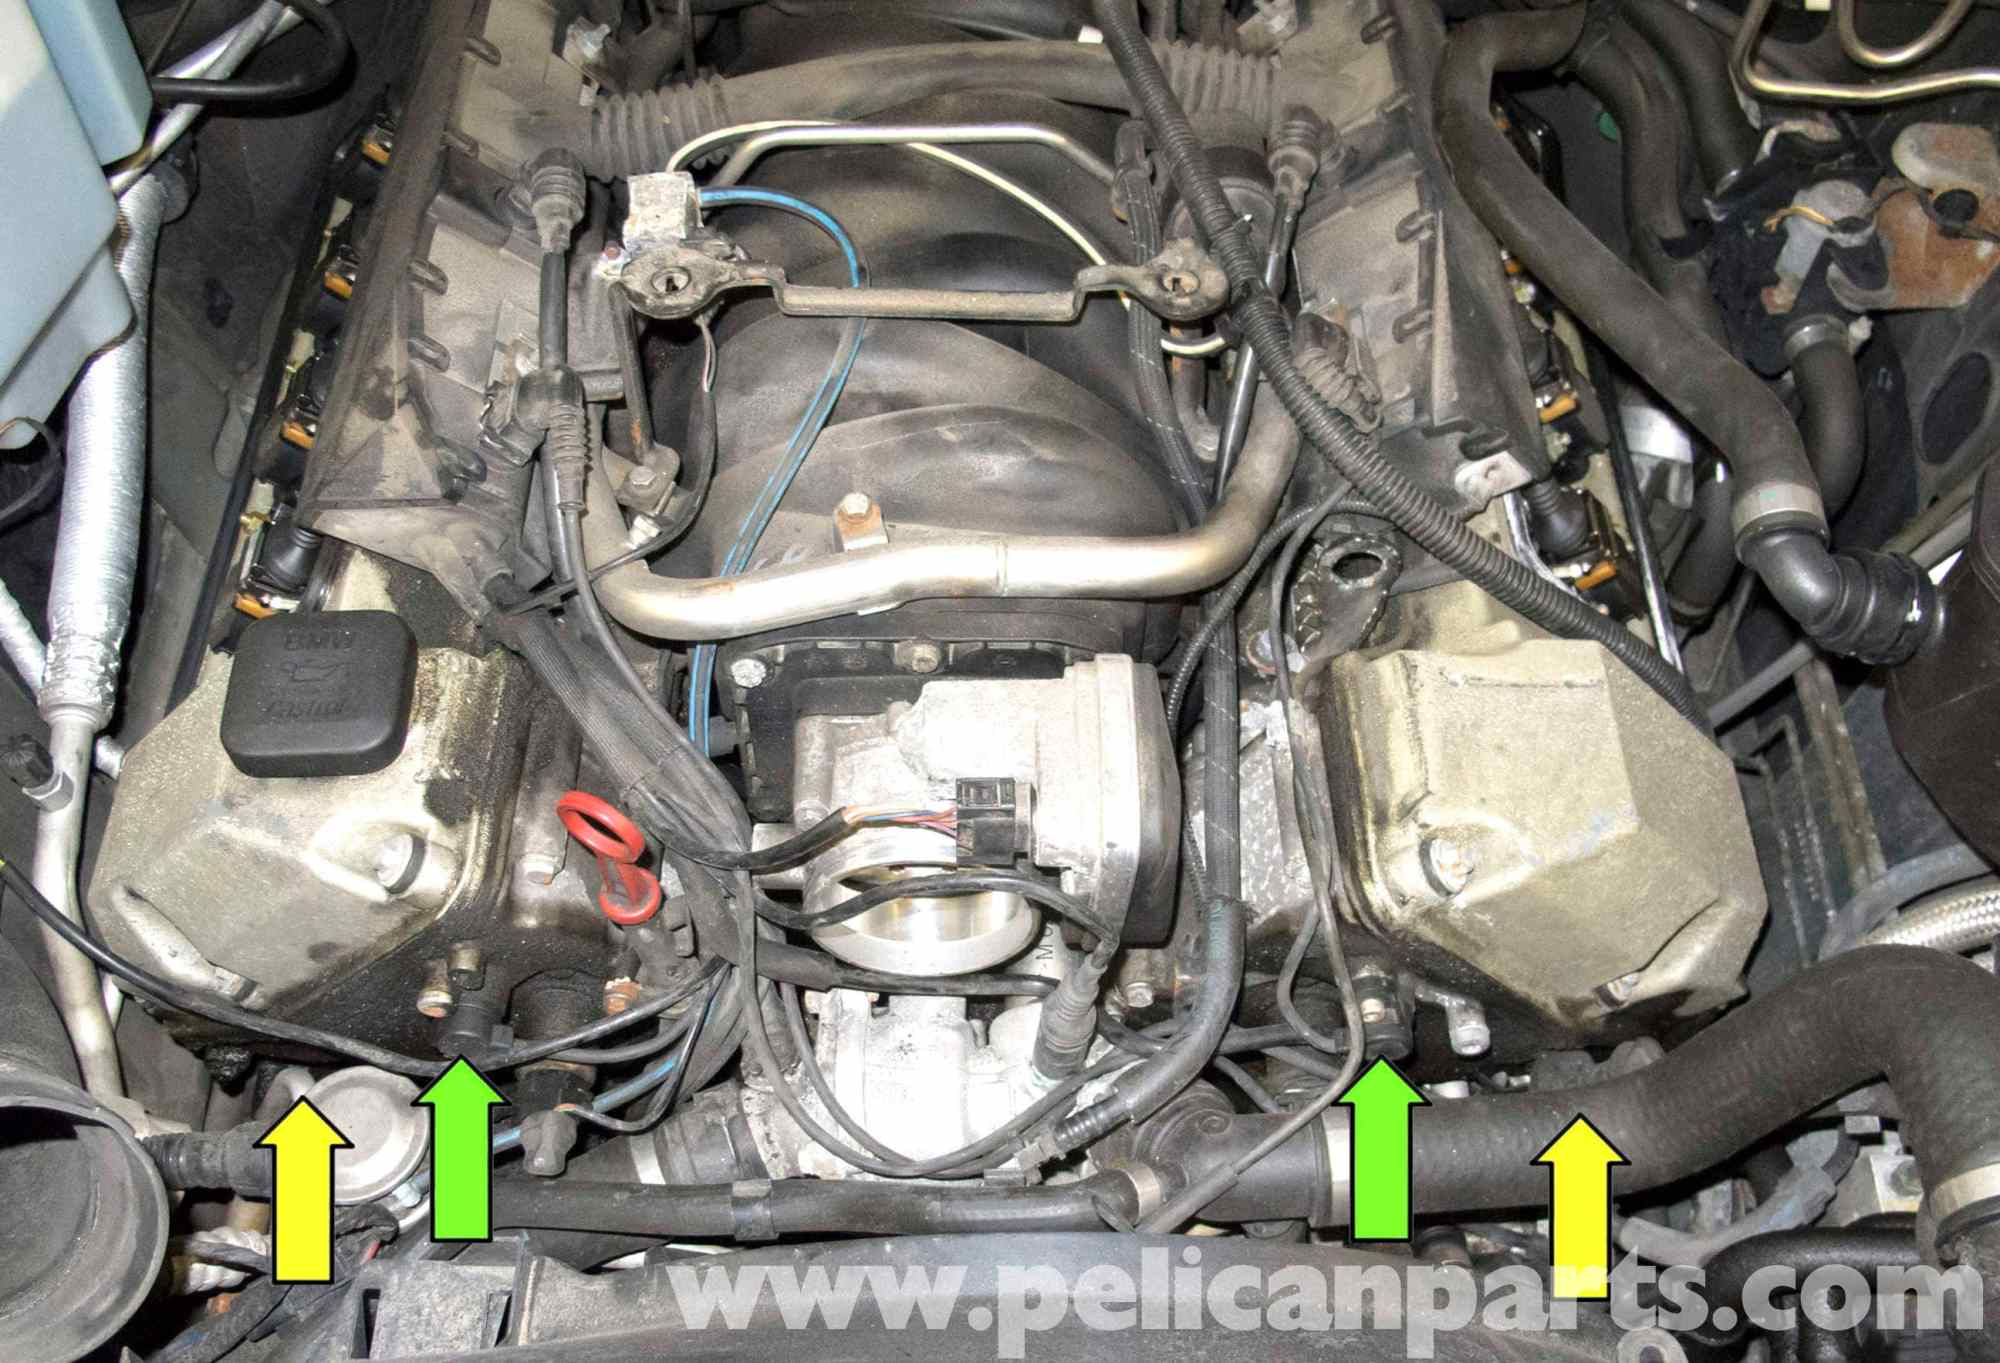 hight resolution of bmw vanos timing diagram further 2006 bmw x5 fuel filter location on bmw vanos timing diagram further 2006 bmw x5 fuel filter location on